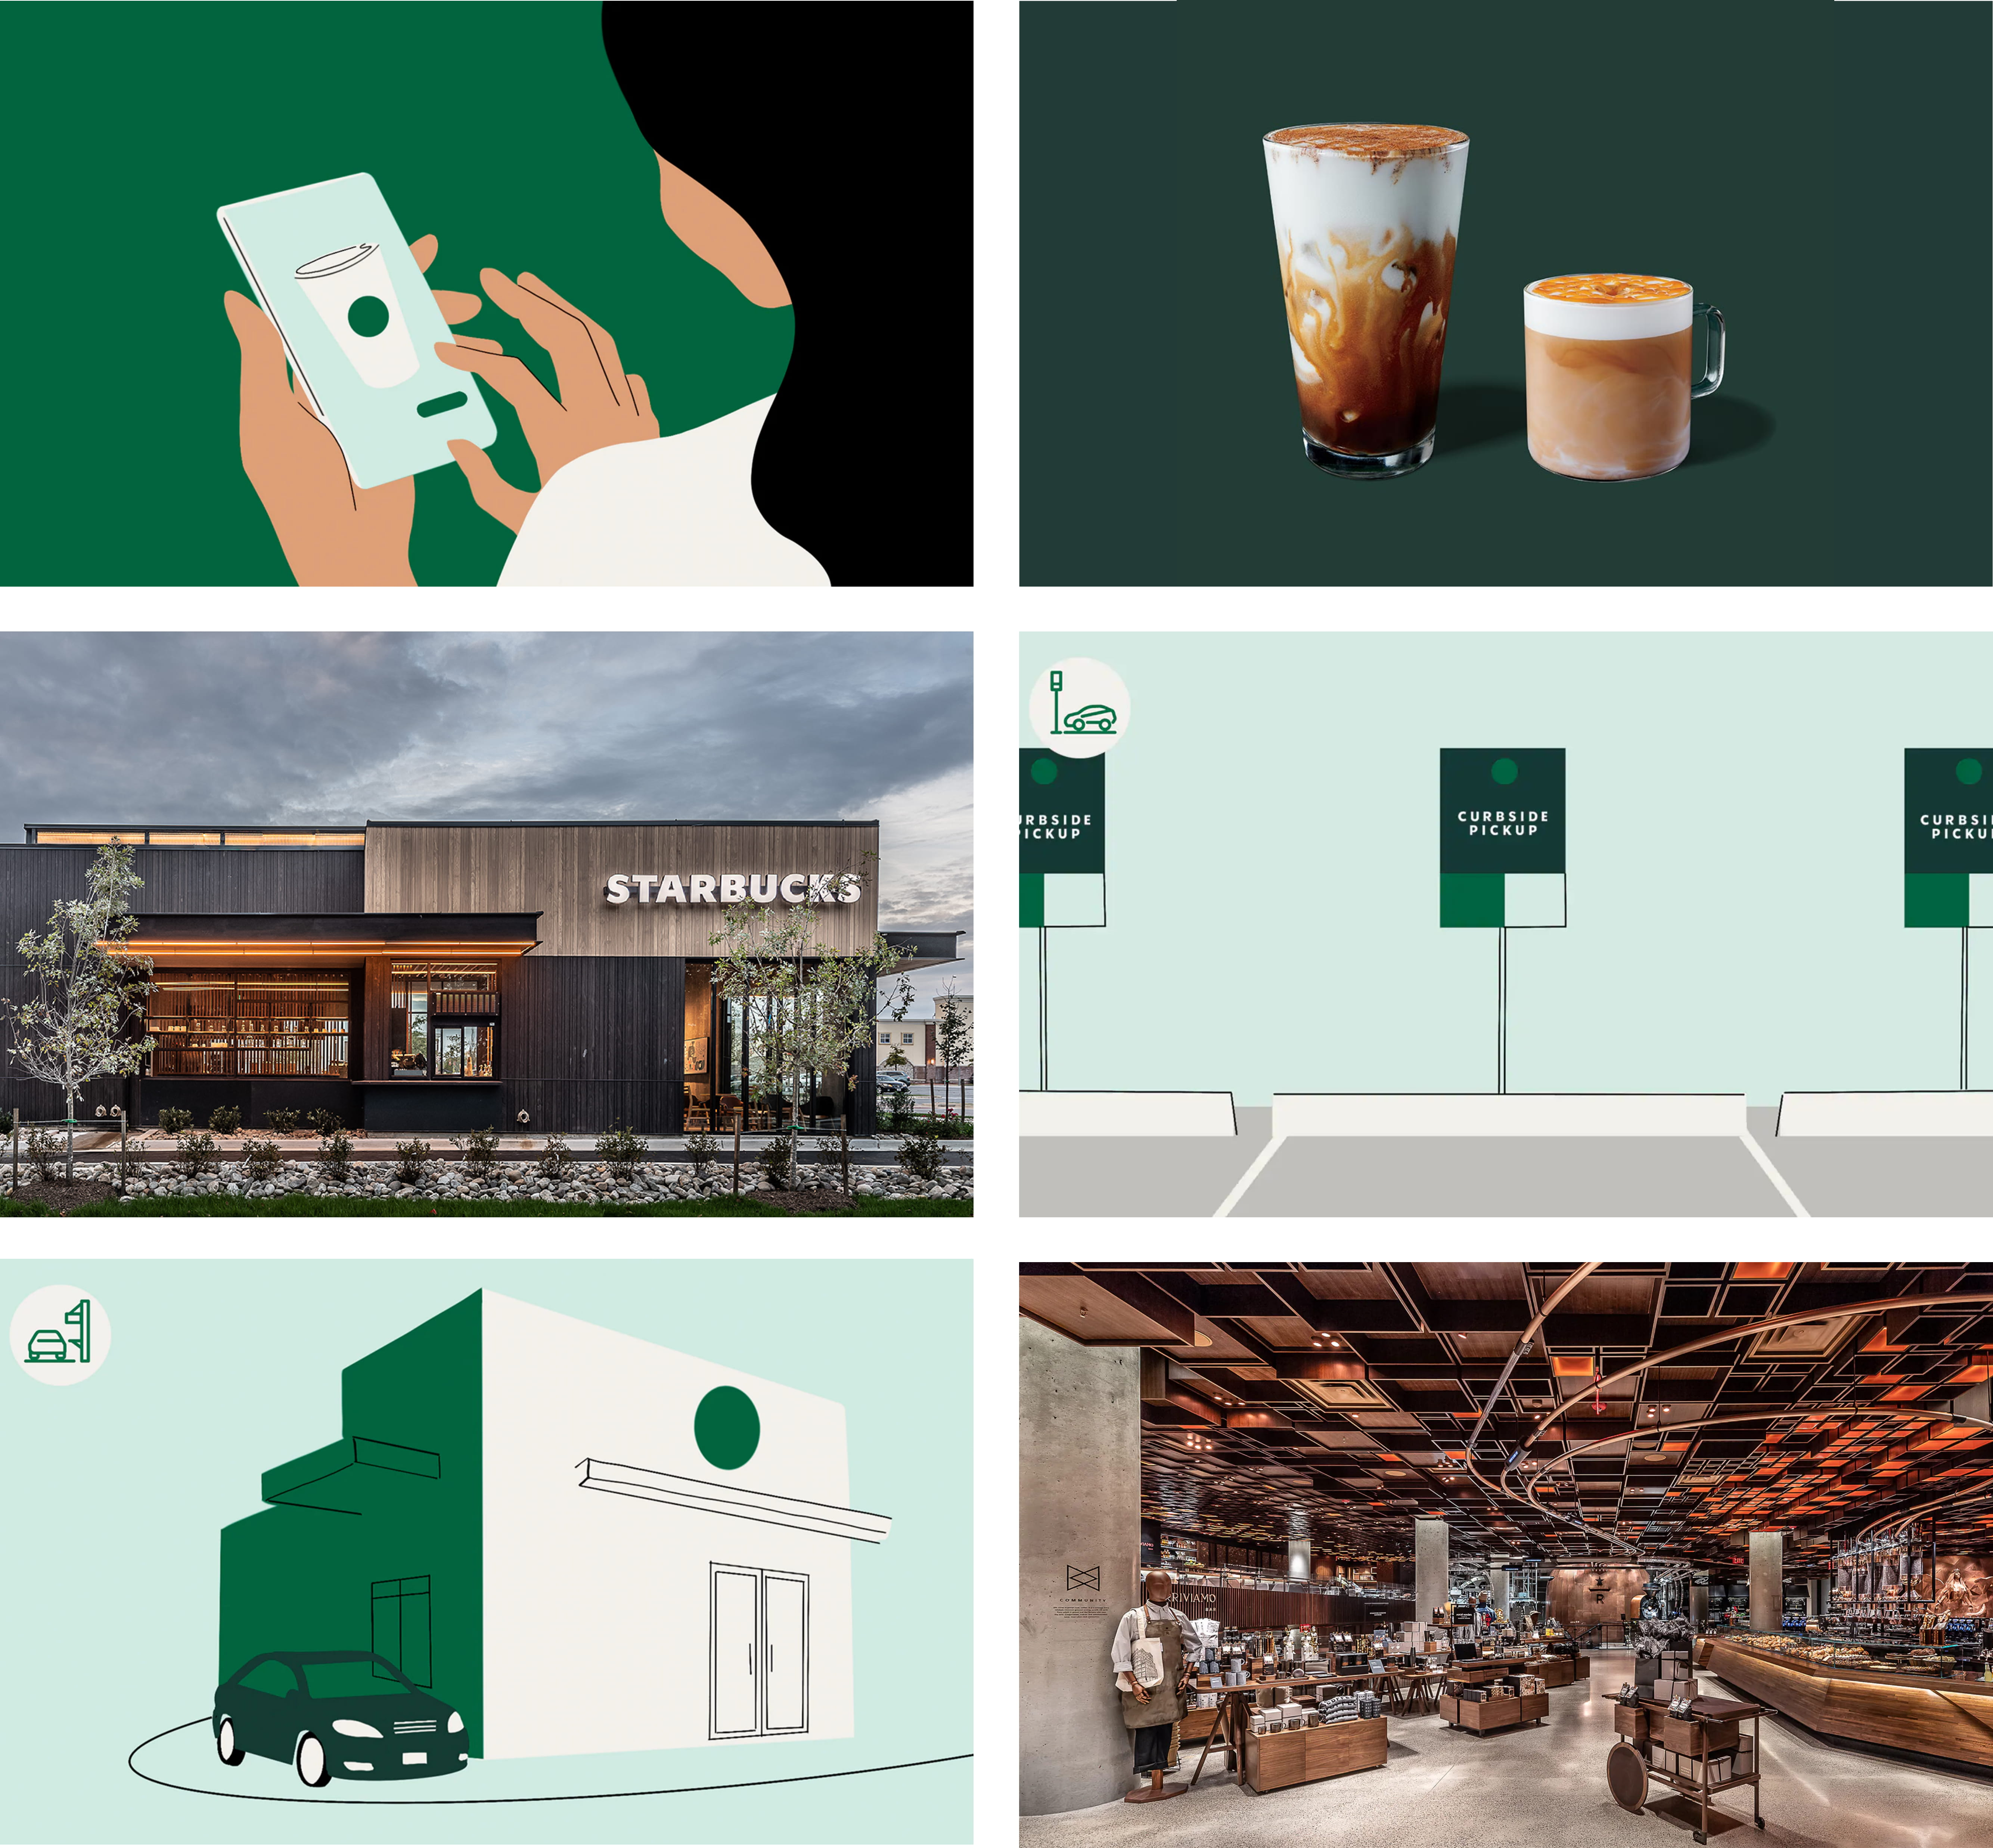 Starbucks Mobile App Development Agency, Starbucks Mobile App Design Agency, Starbucks UX/UI Agency, Starbucks User Experience Agency, Starbucks User Interface Agency, Starbucks Product Development Agency, Starbucks Product Design Agency